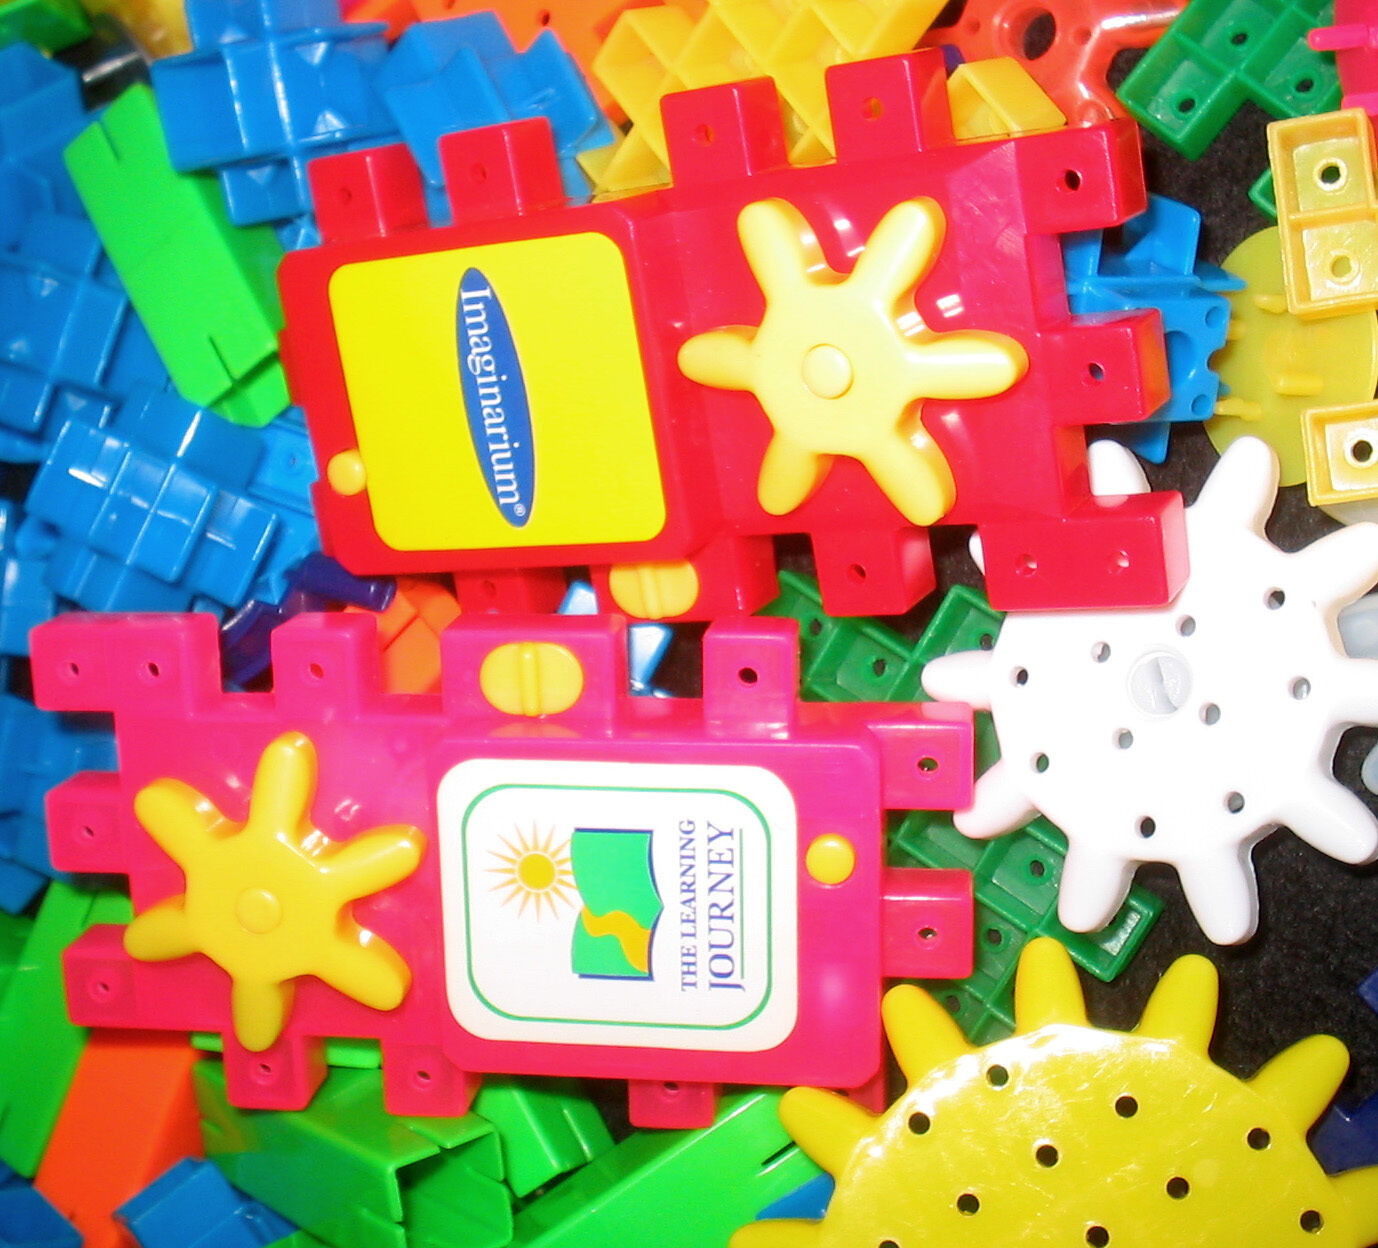 Learning Learning Learning Journey   Imaginarium TECHNO GEARS Building Contruction Toy 6b1311